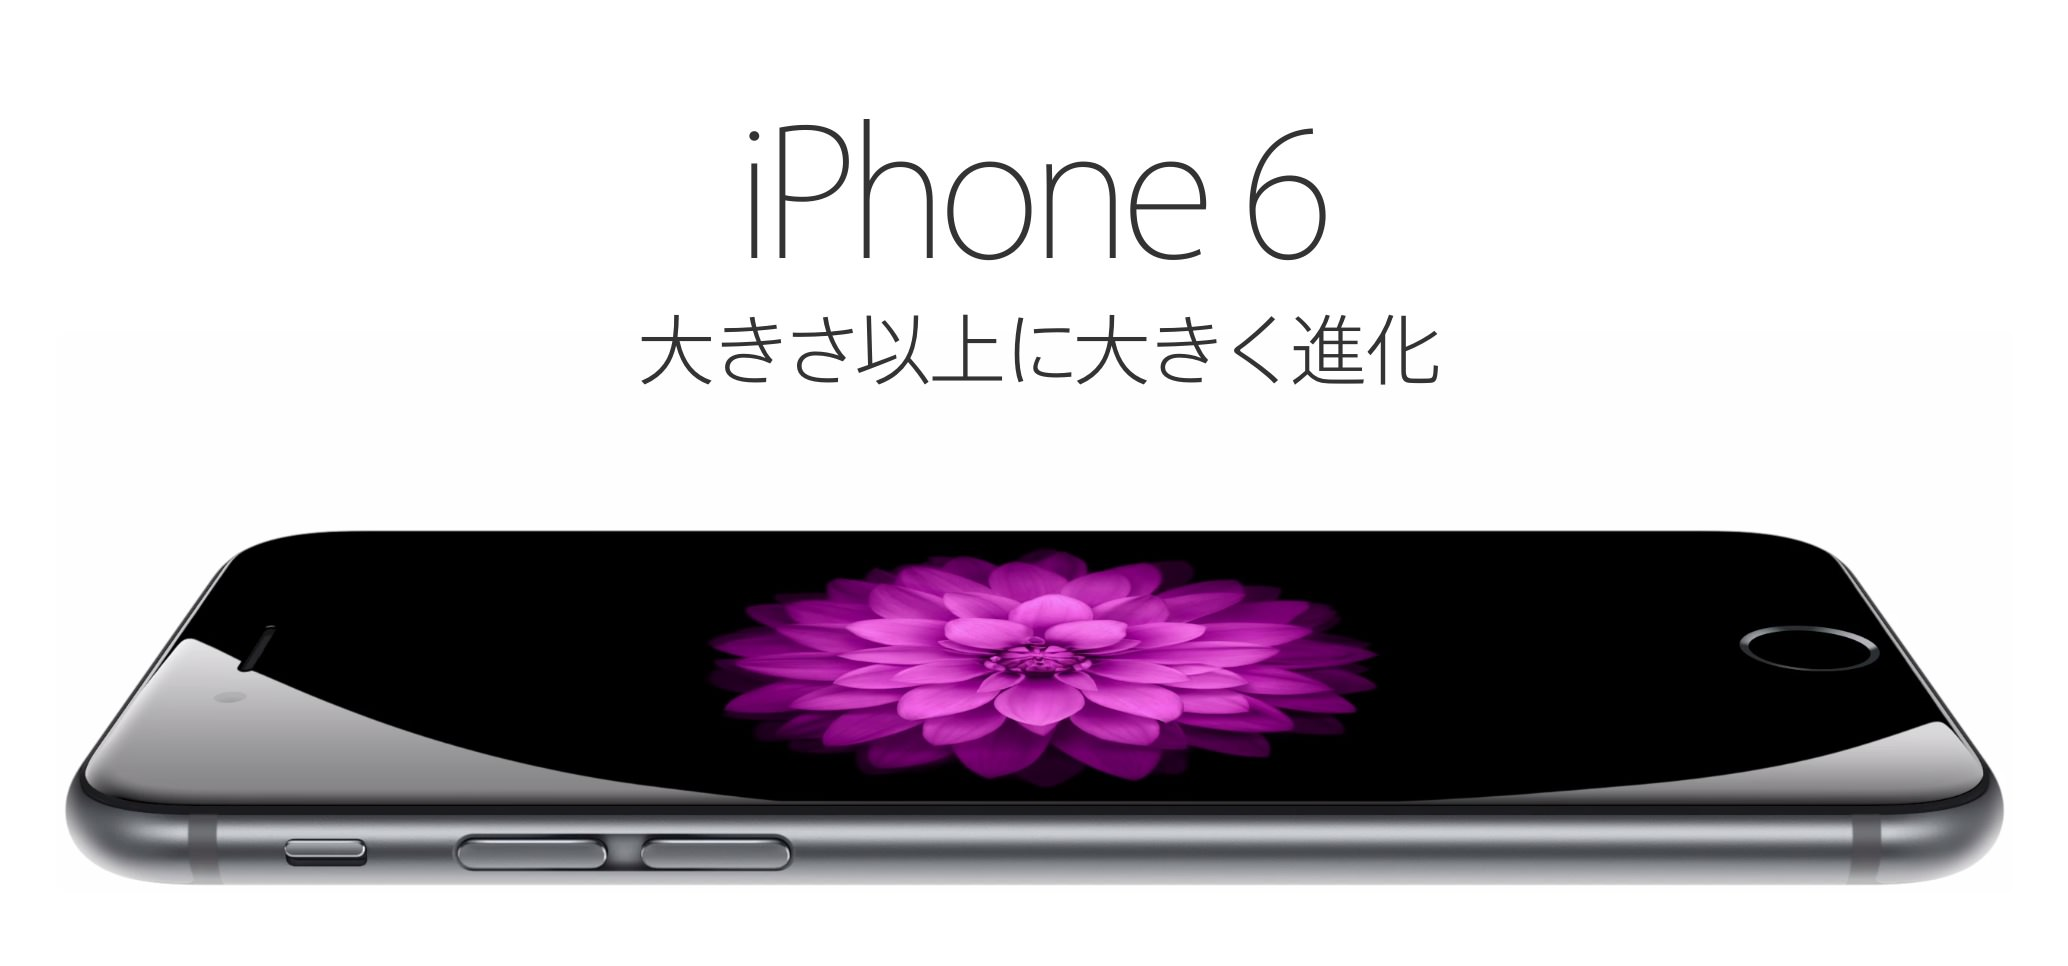 Iphone6 and iphone6plus compare 01